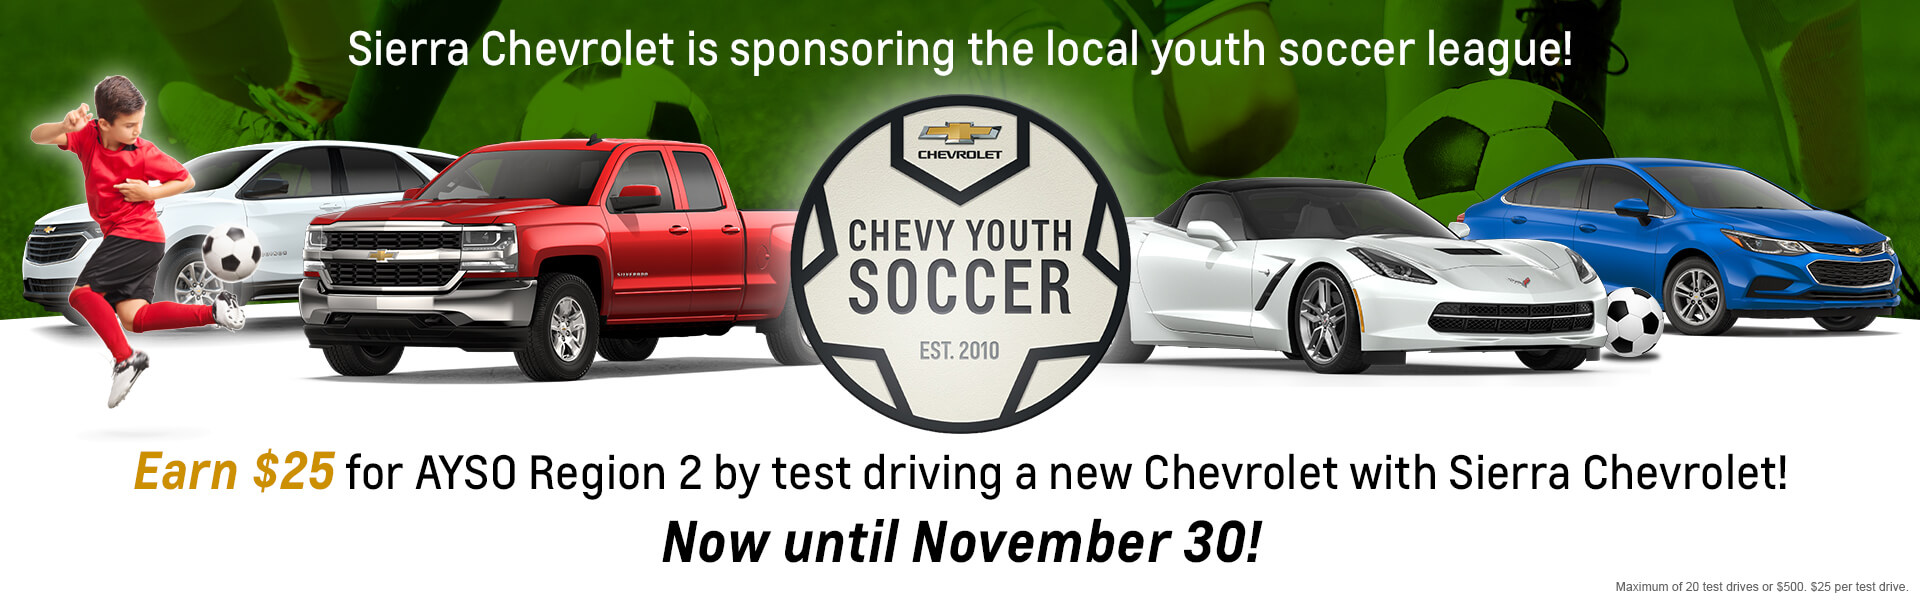 Chevy Youth Soccer Banner